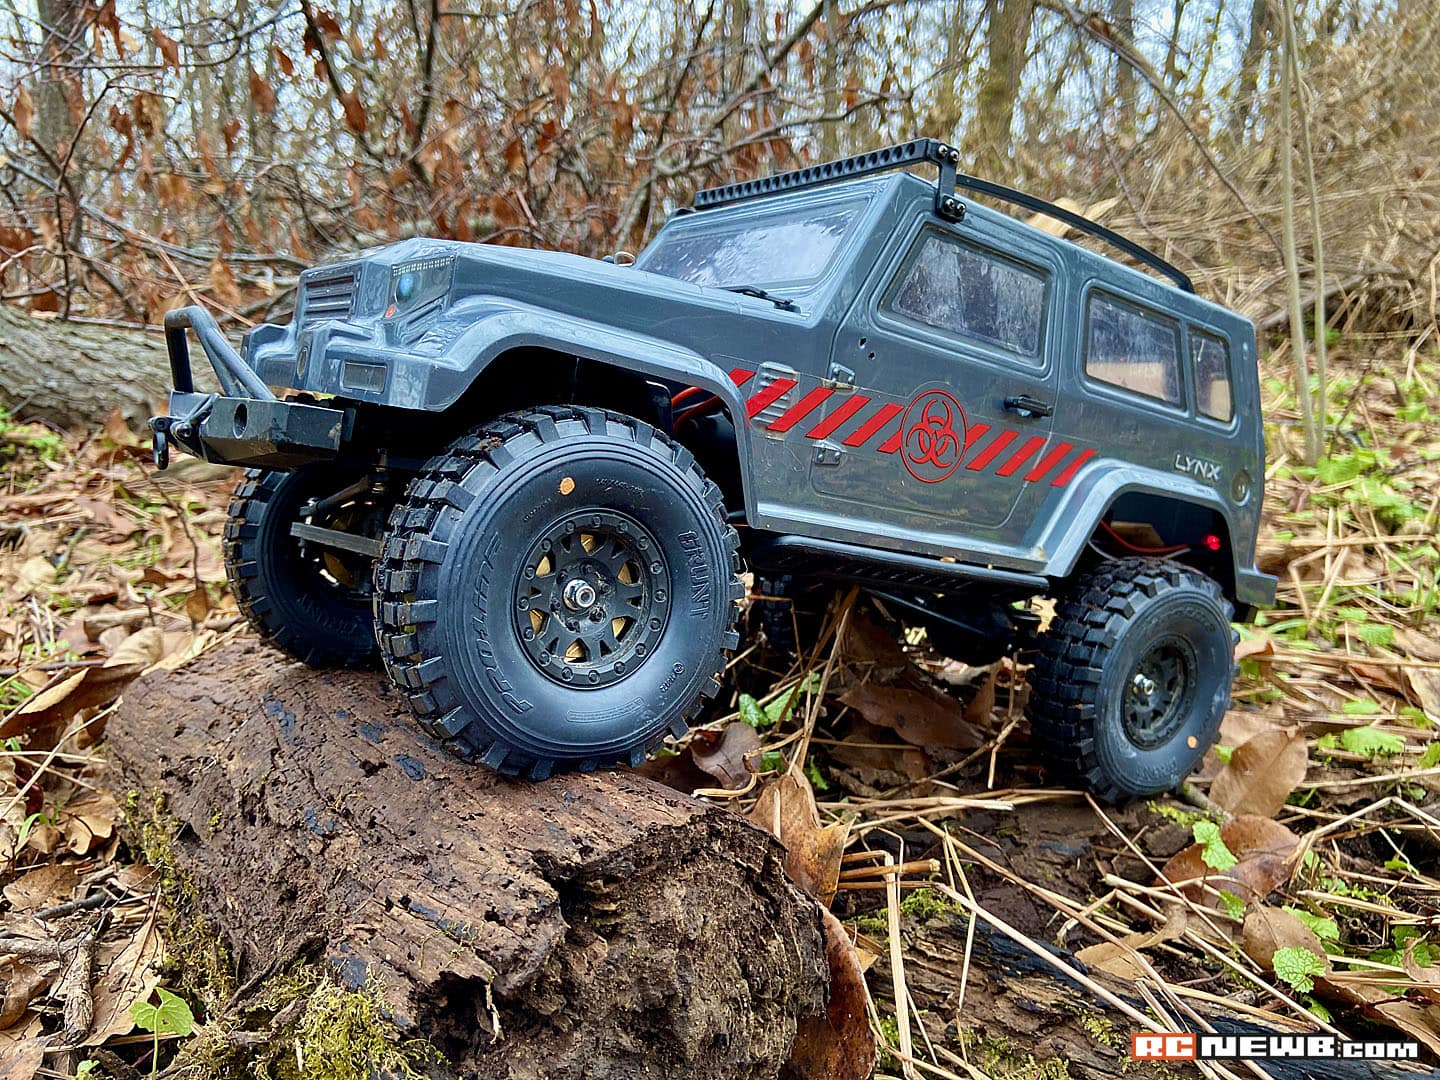 Hands-on with Pro-Line's Grunt 1.9″ G8 Rock Terrain Tires